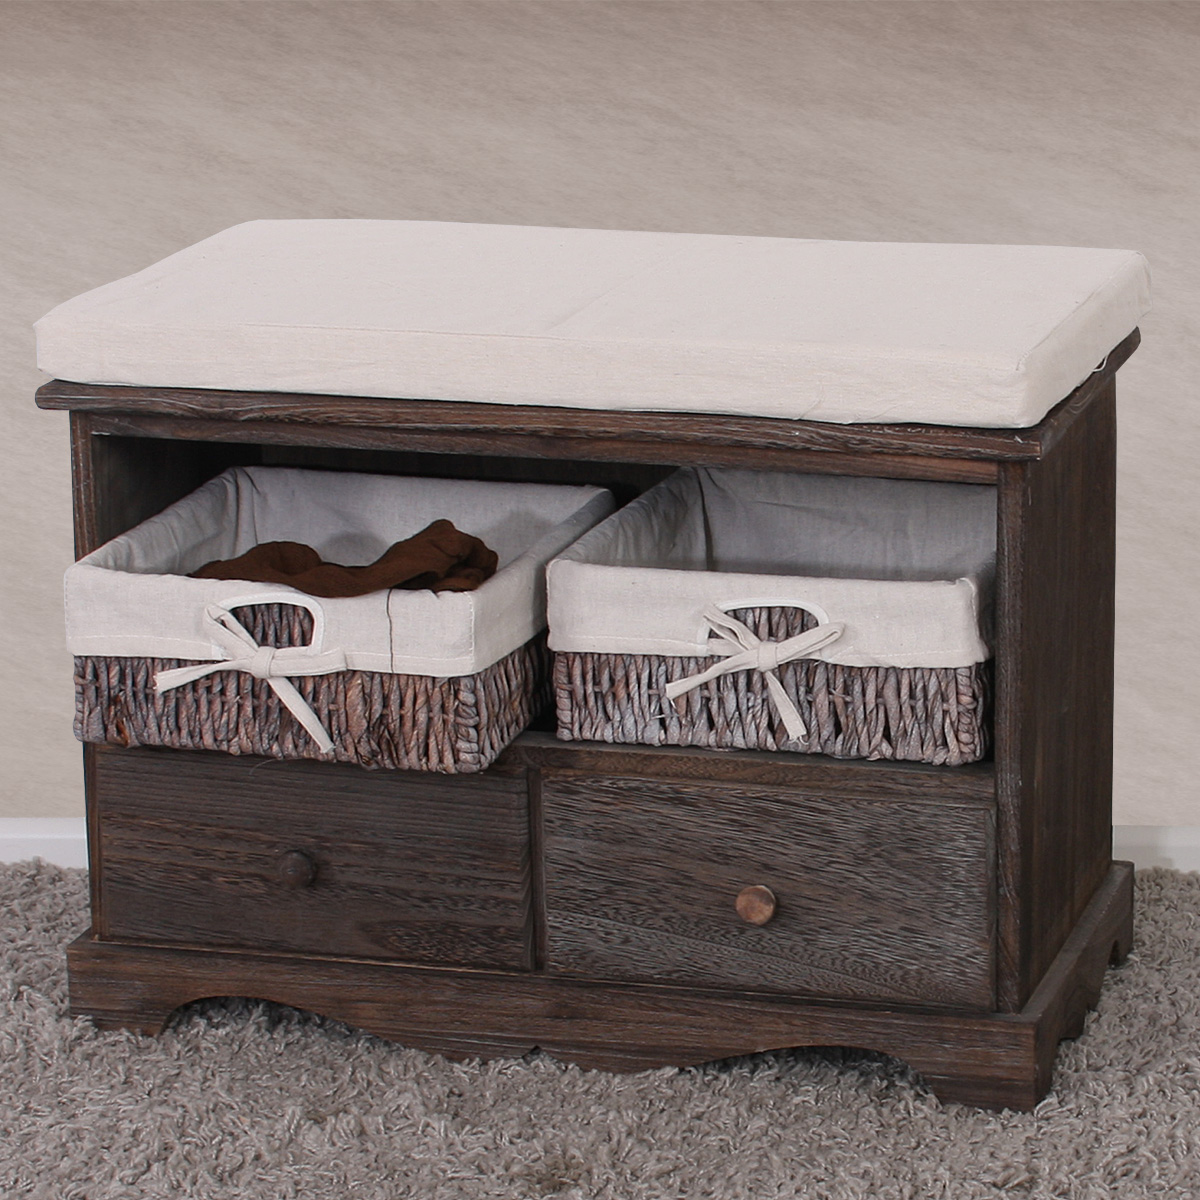 shabby sitzbank kommode mit 2 k rben vintage braun. Black Bedroom Furniture Sets. Home Design Ideas